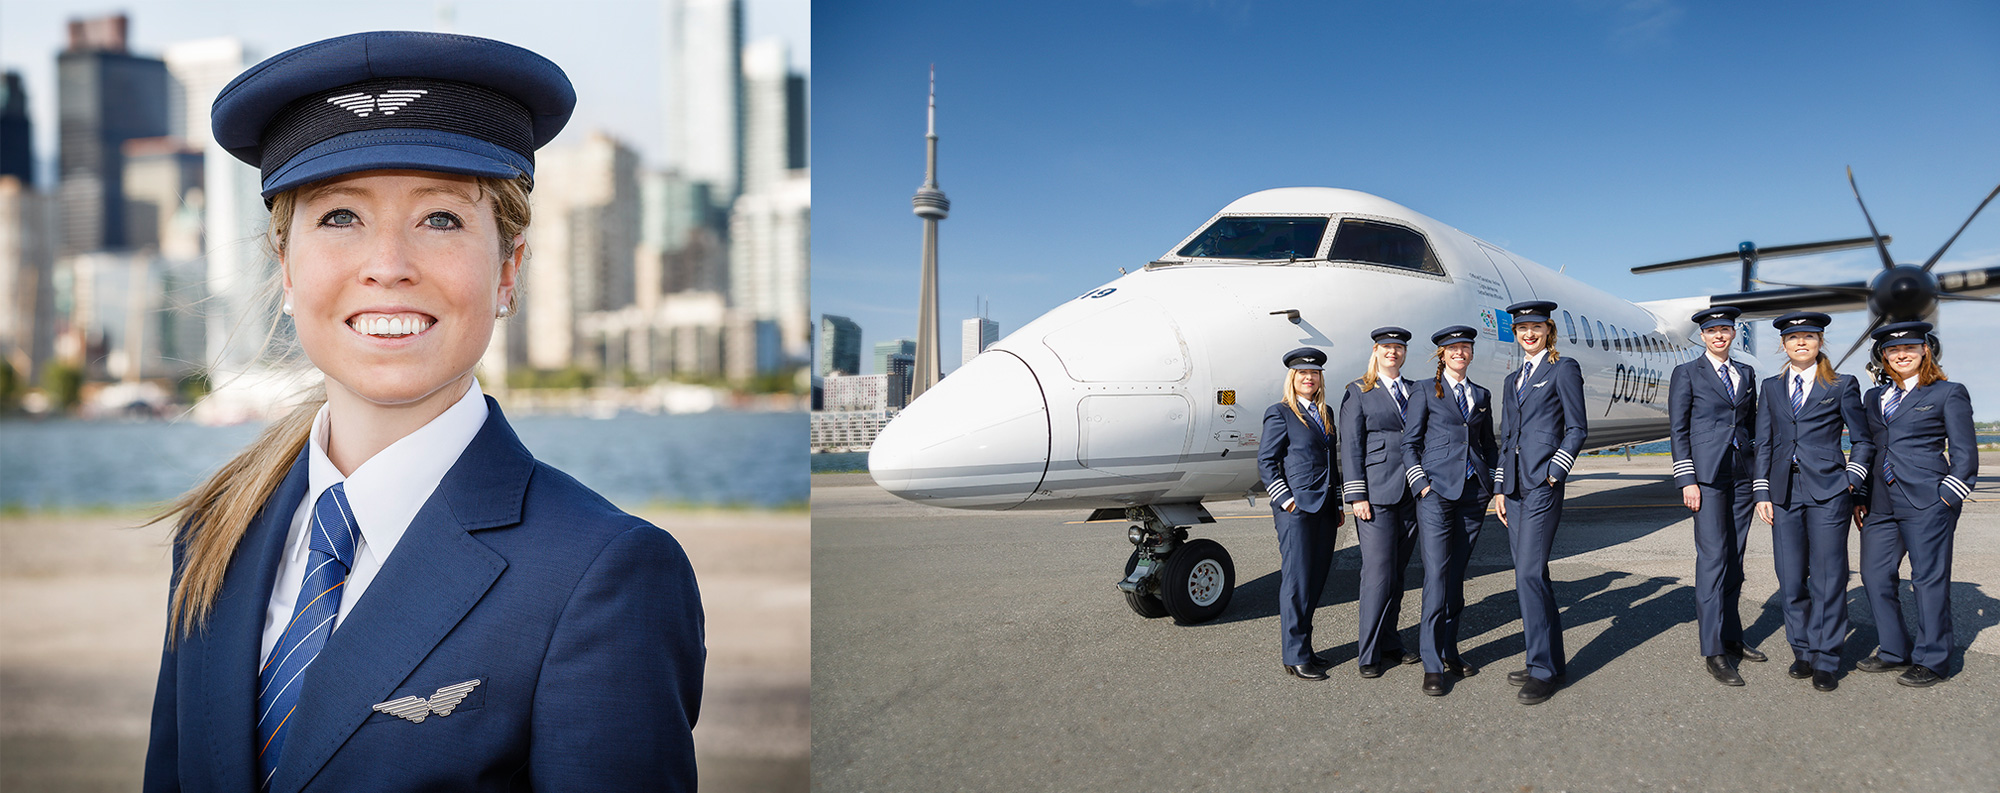 Pilots_Porter Airlines